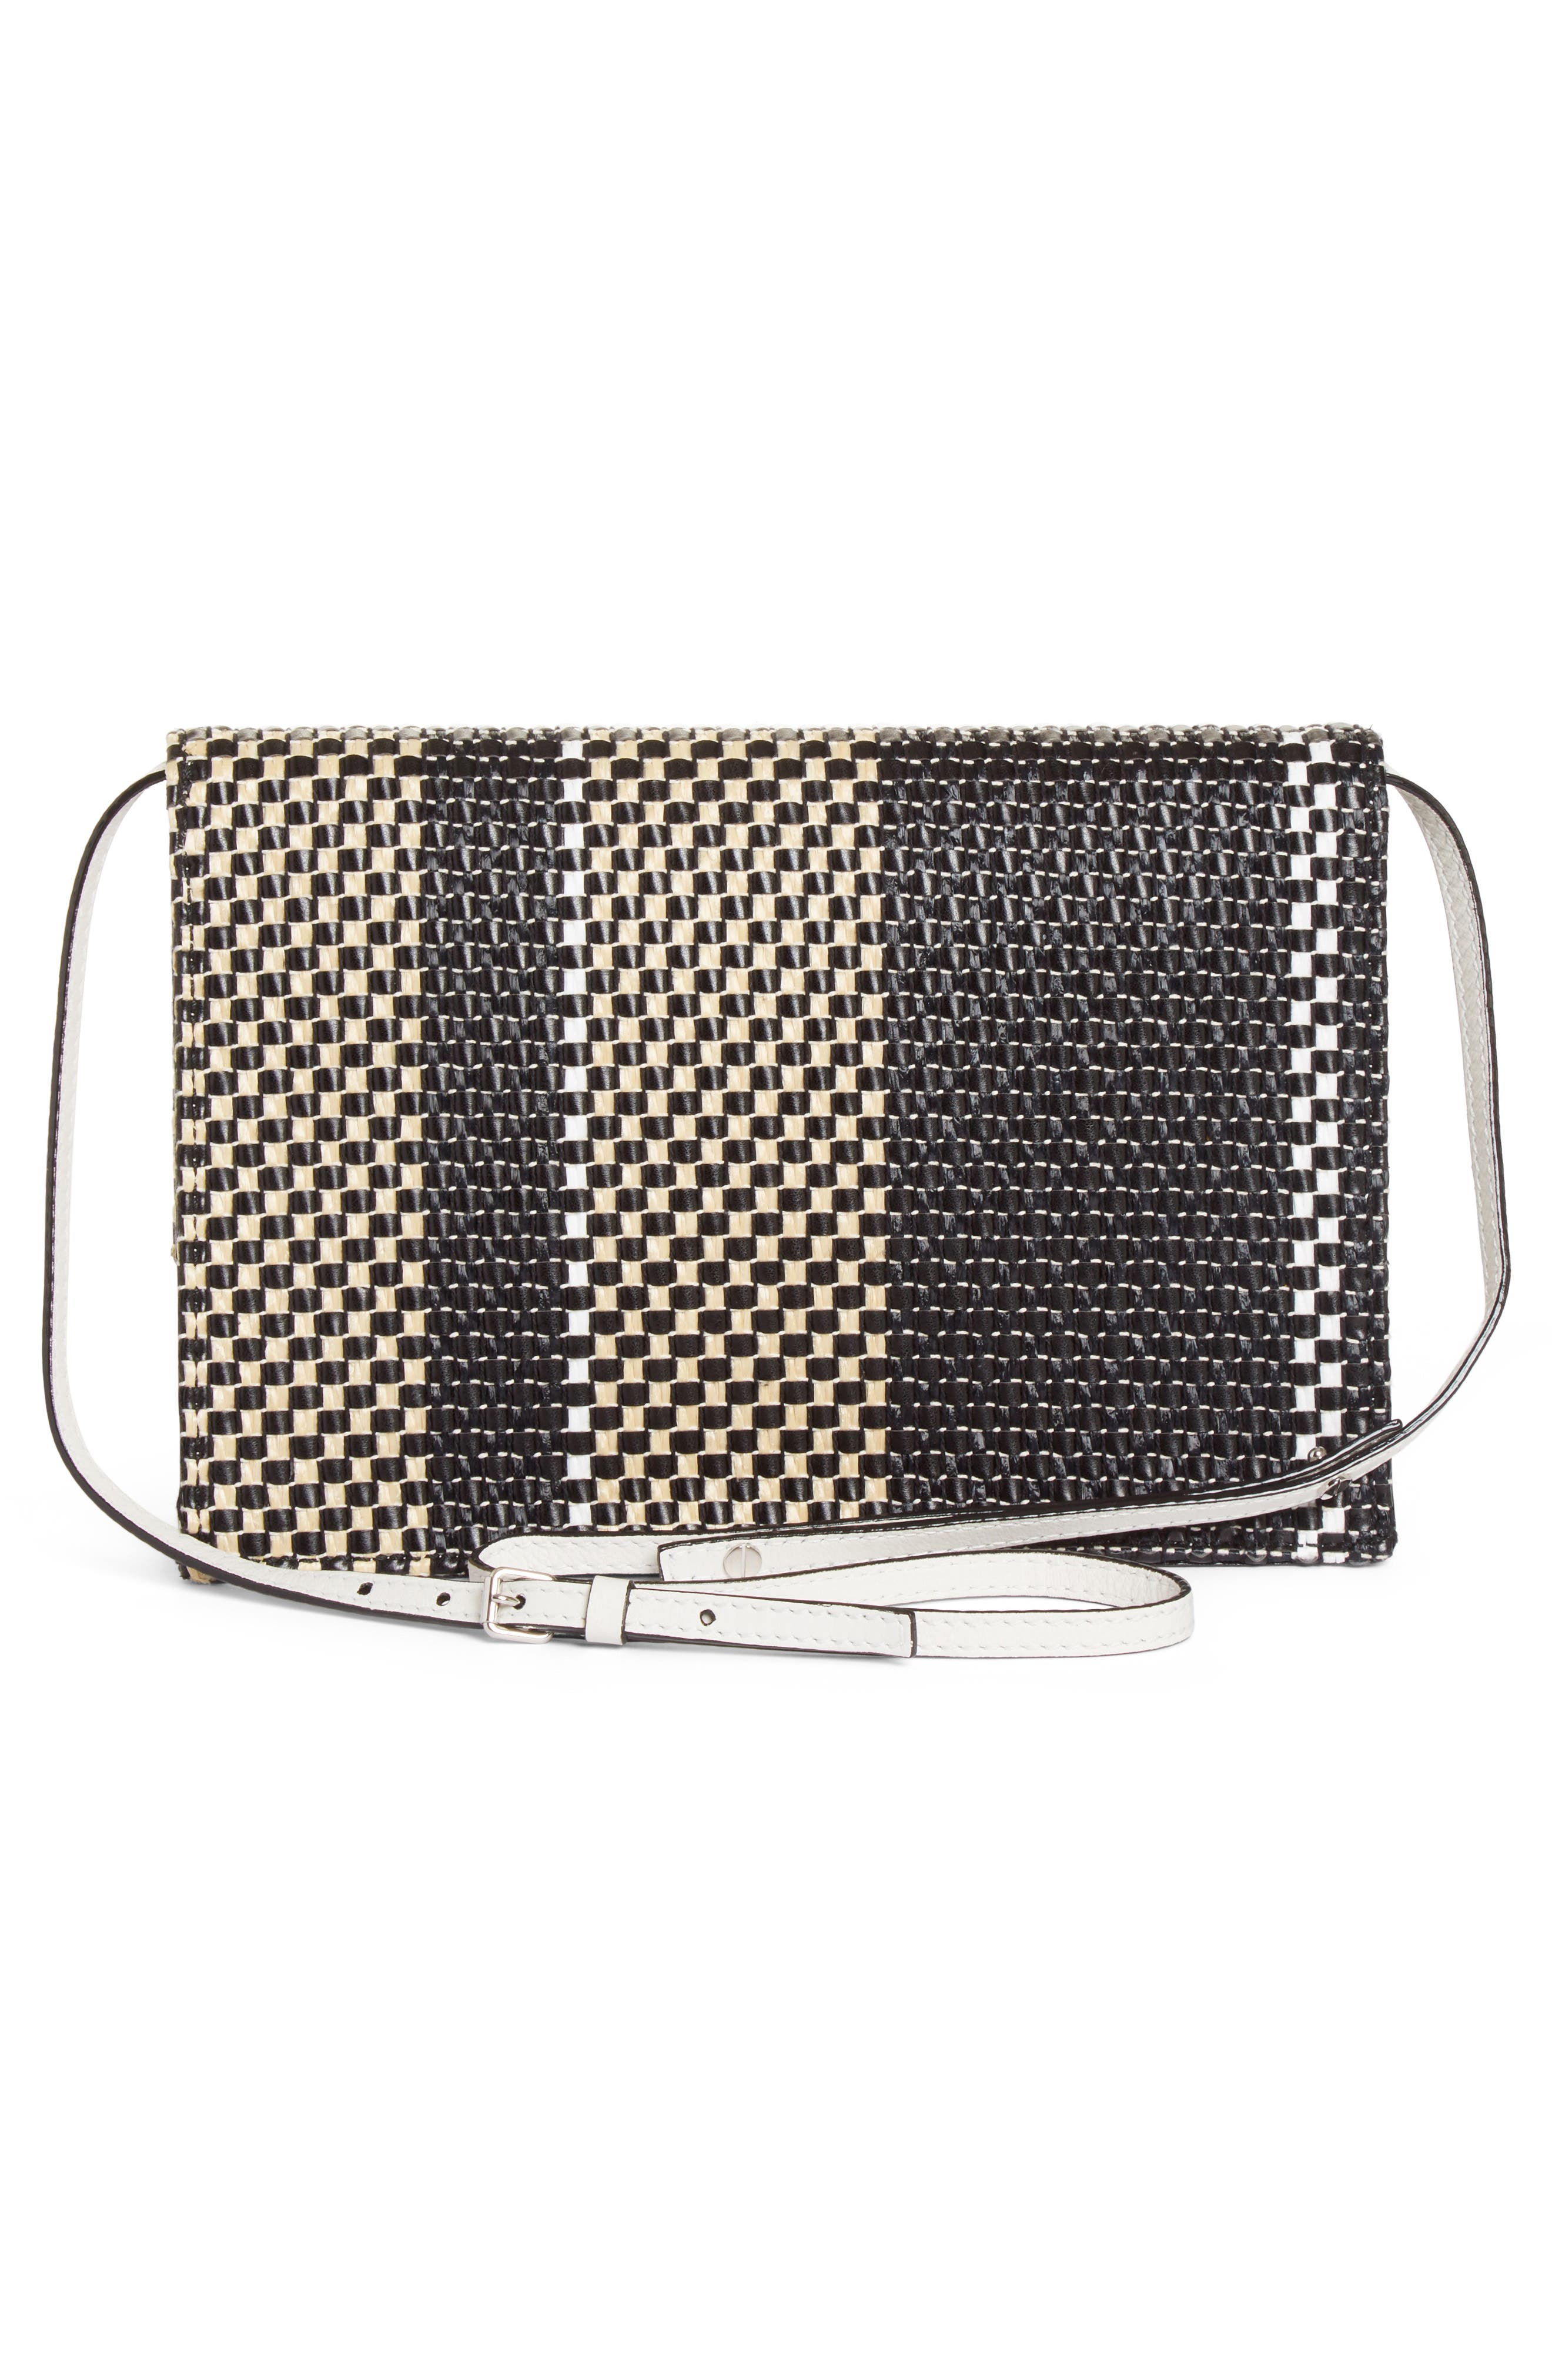 Alternate Image 3  - Proenza Schouler Small Lunch Bag Woven Leather Shoulder Bag